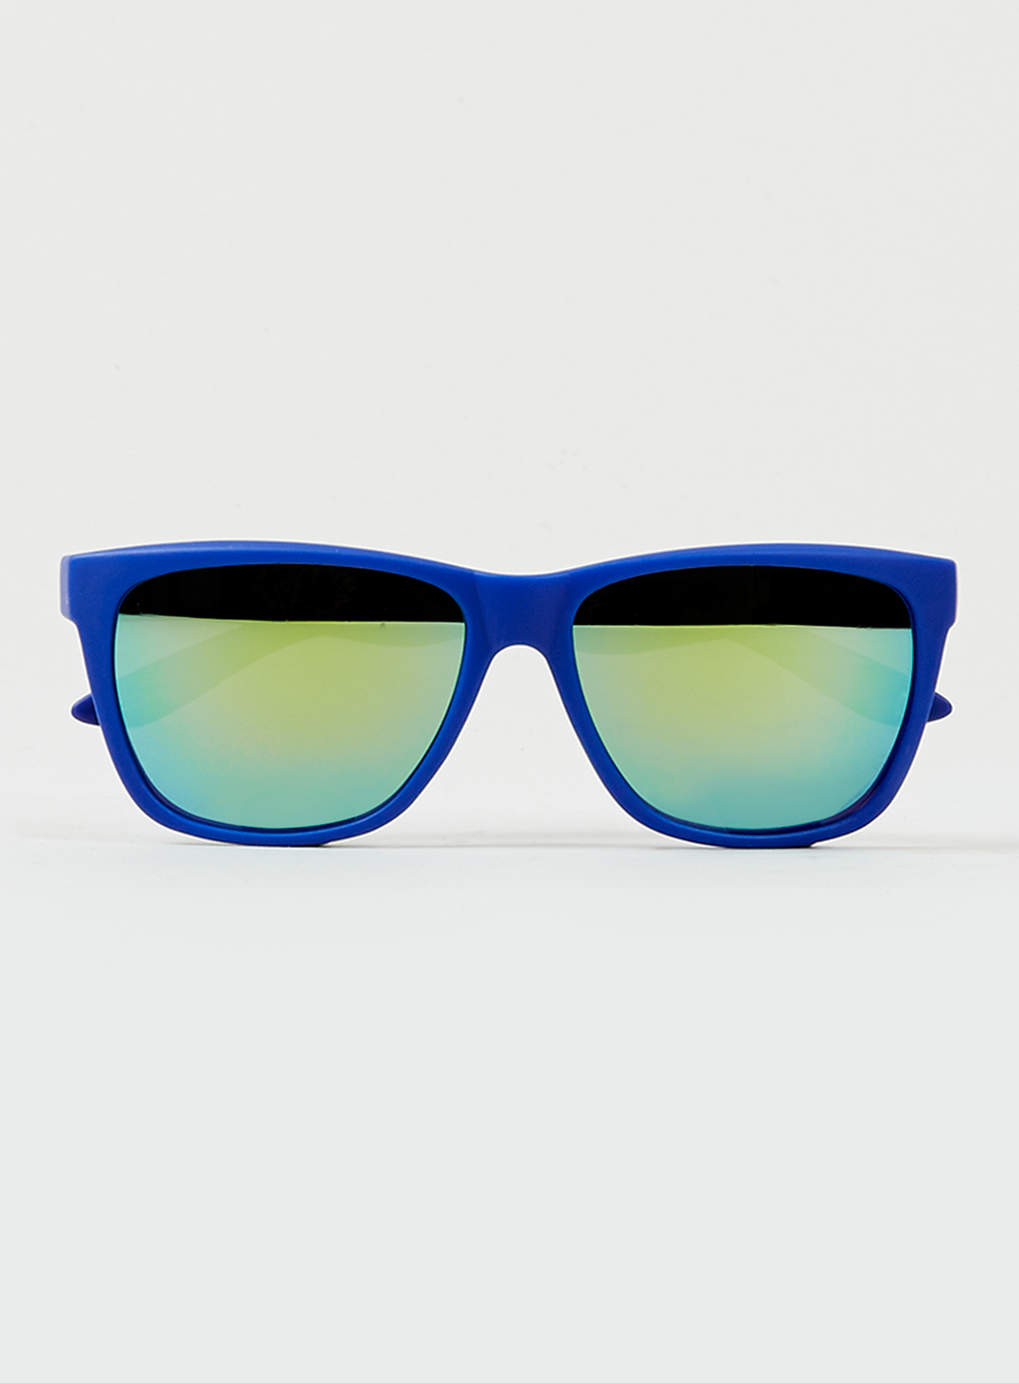 Topman Blue Sports Revo Sunglasses